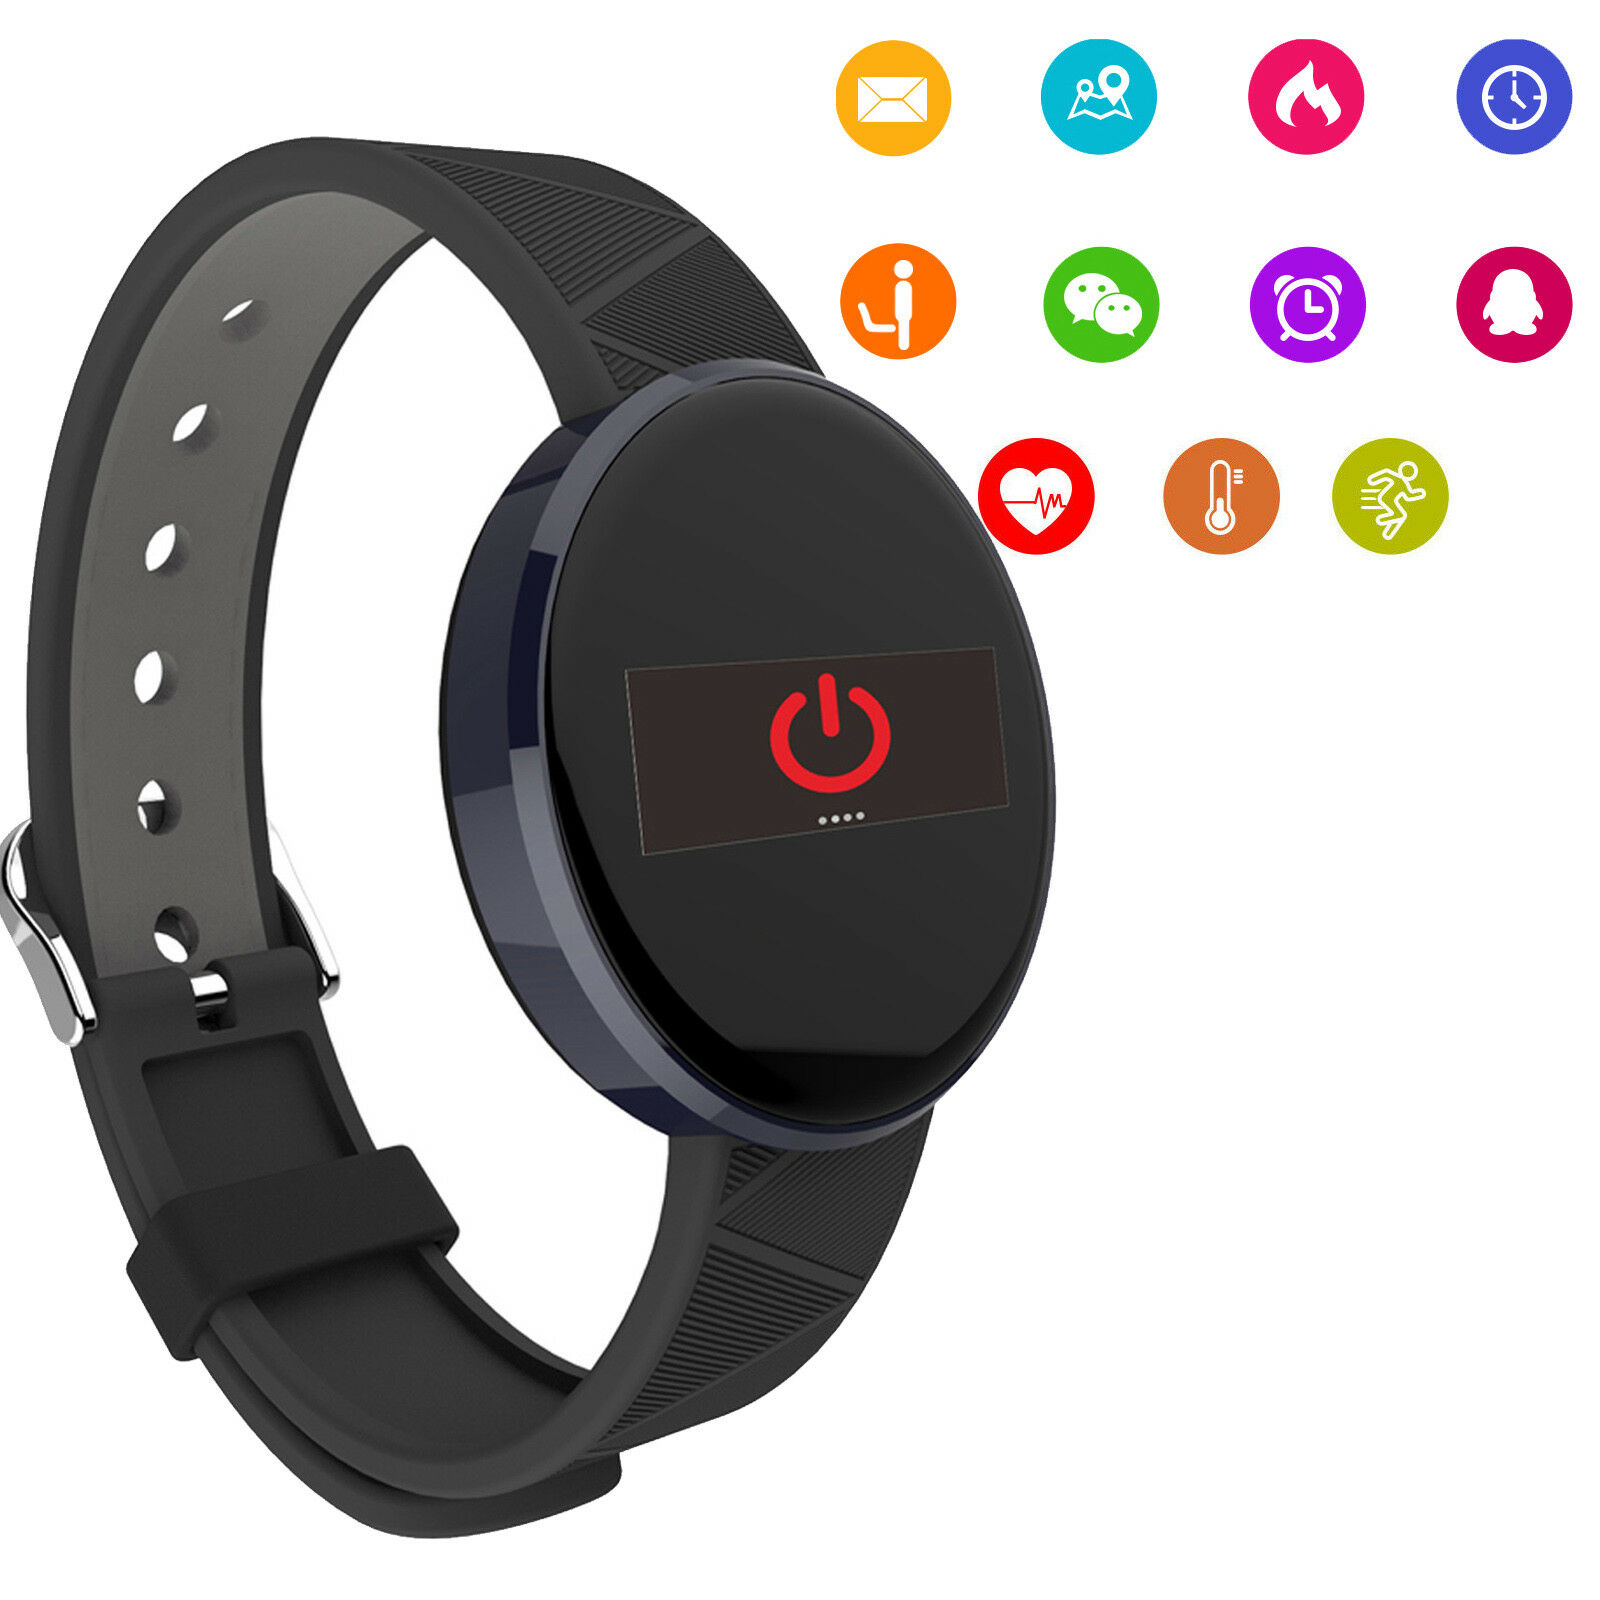 UPC 216752999572 product image for Heart Rate Smart Watch Bluetooth Wrist Band For Huawei P10 P10 Lite P9 Lg K8 K10 | upcitemdb.com